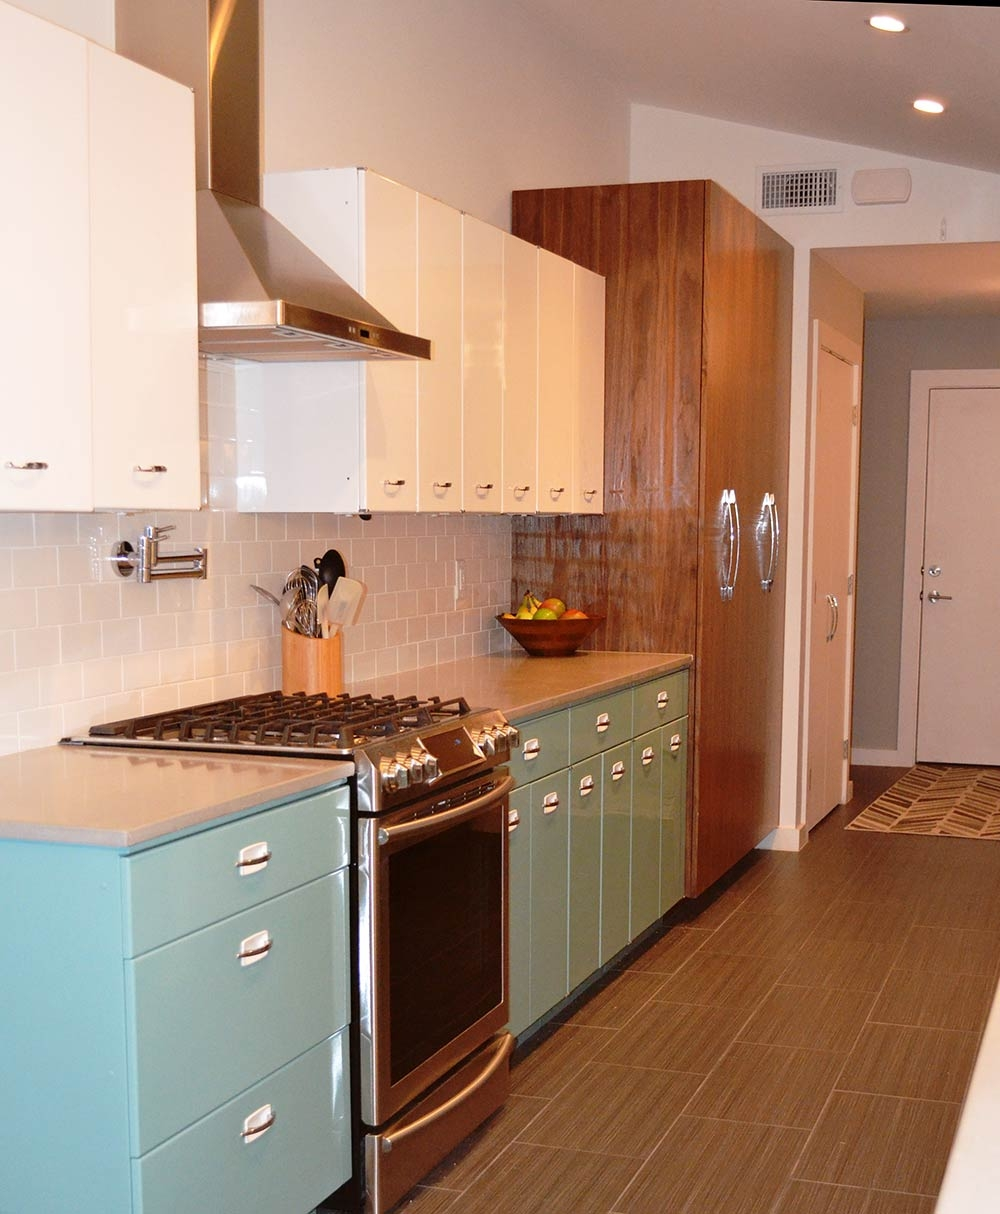 Permalink to Powder Coating Metal Kitchen Cabinets